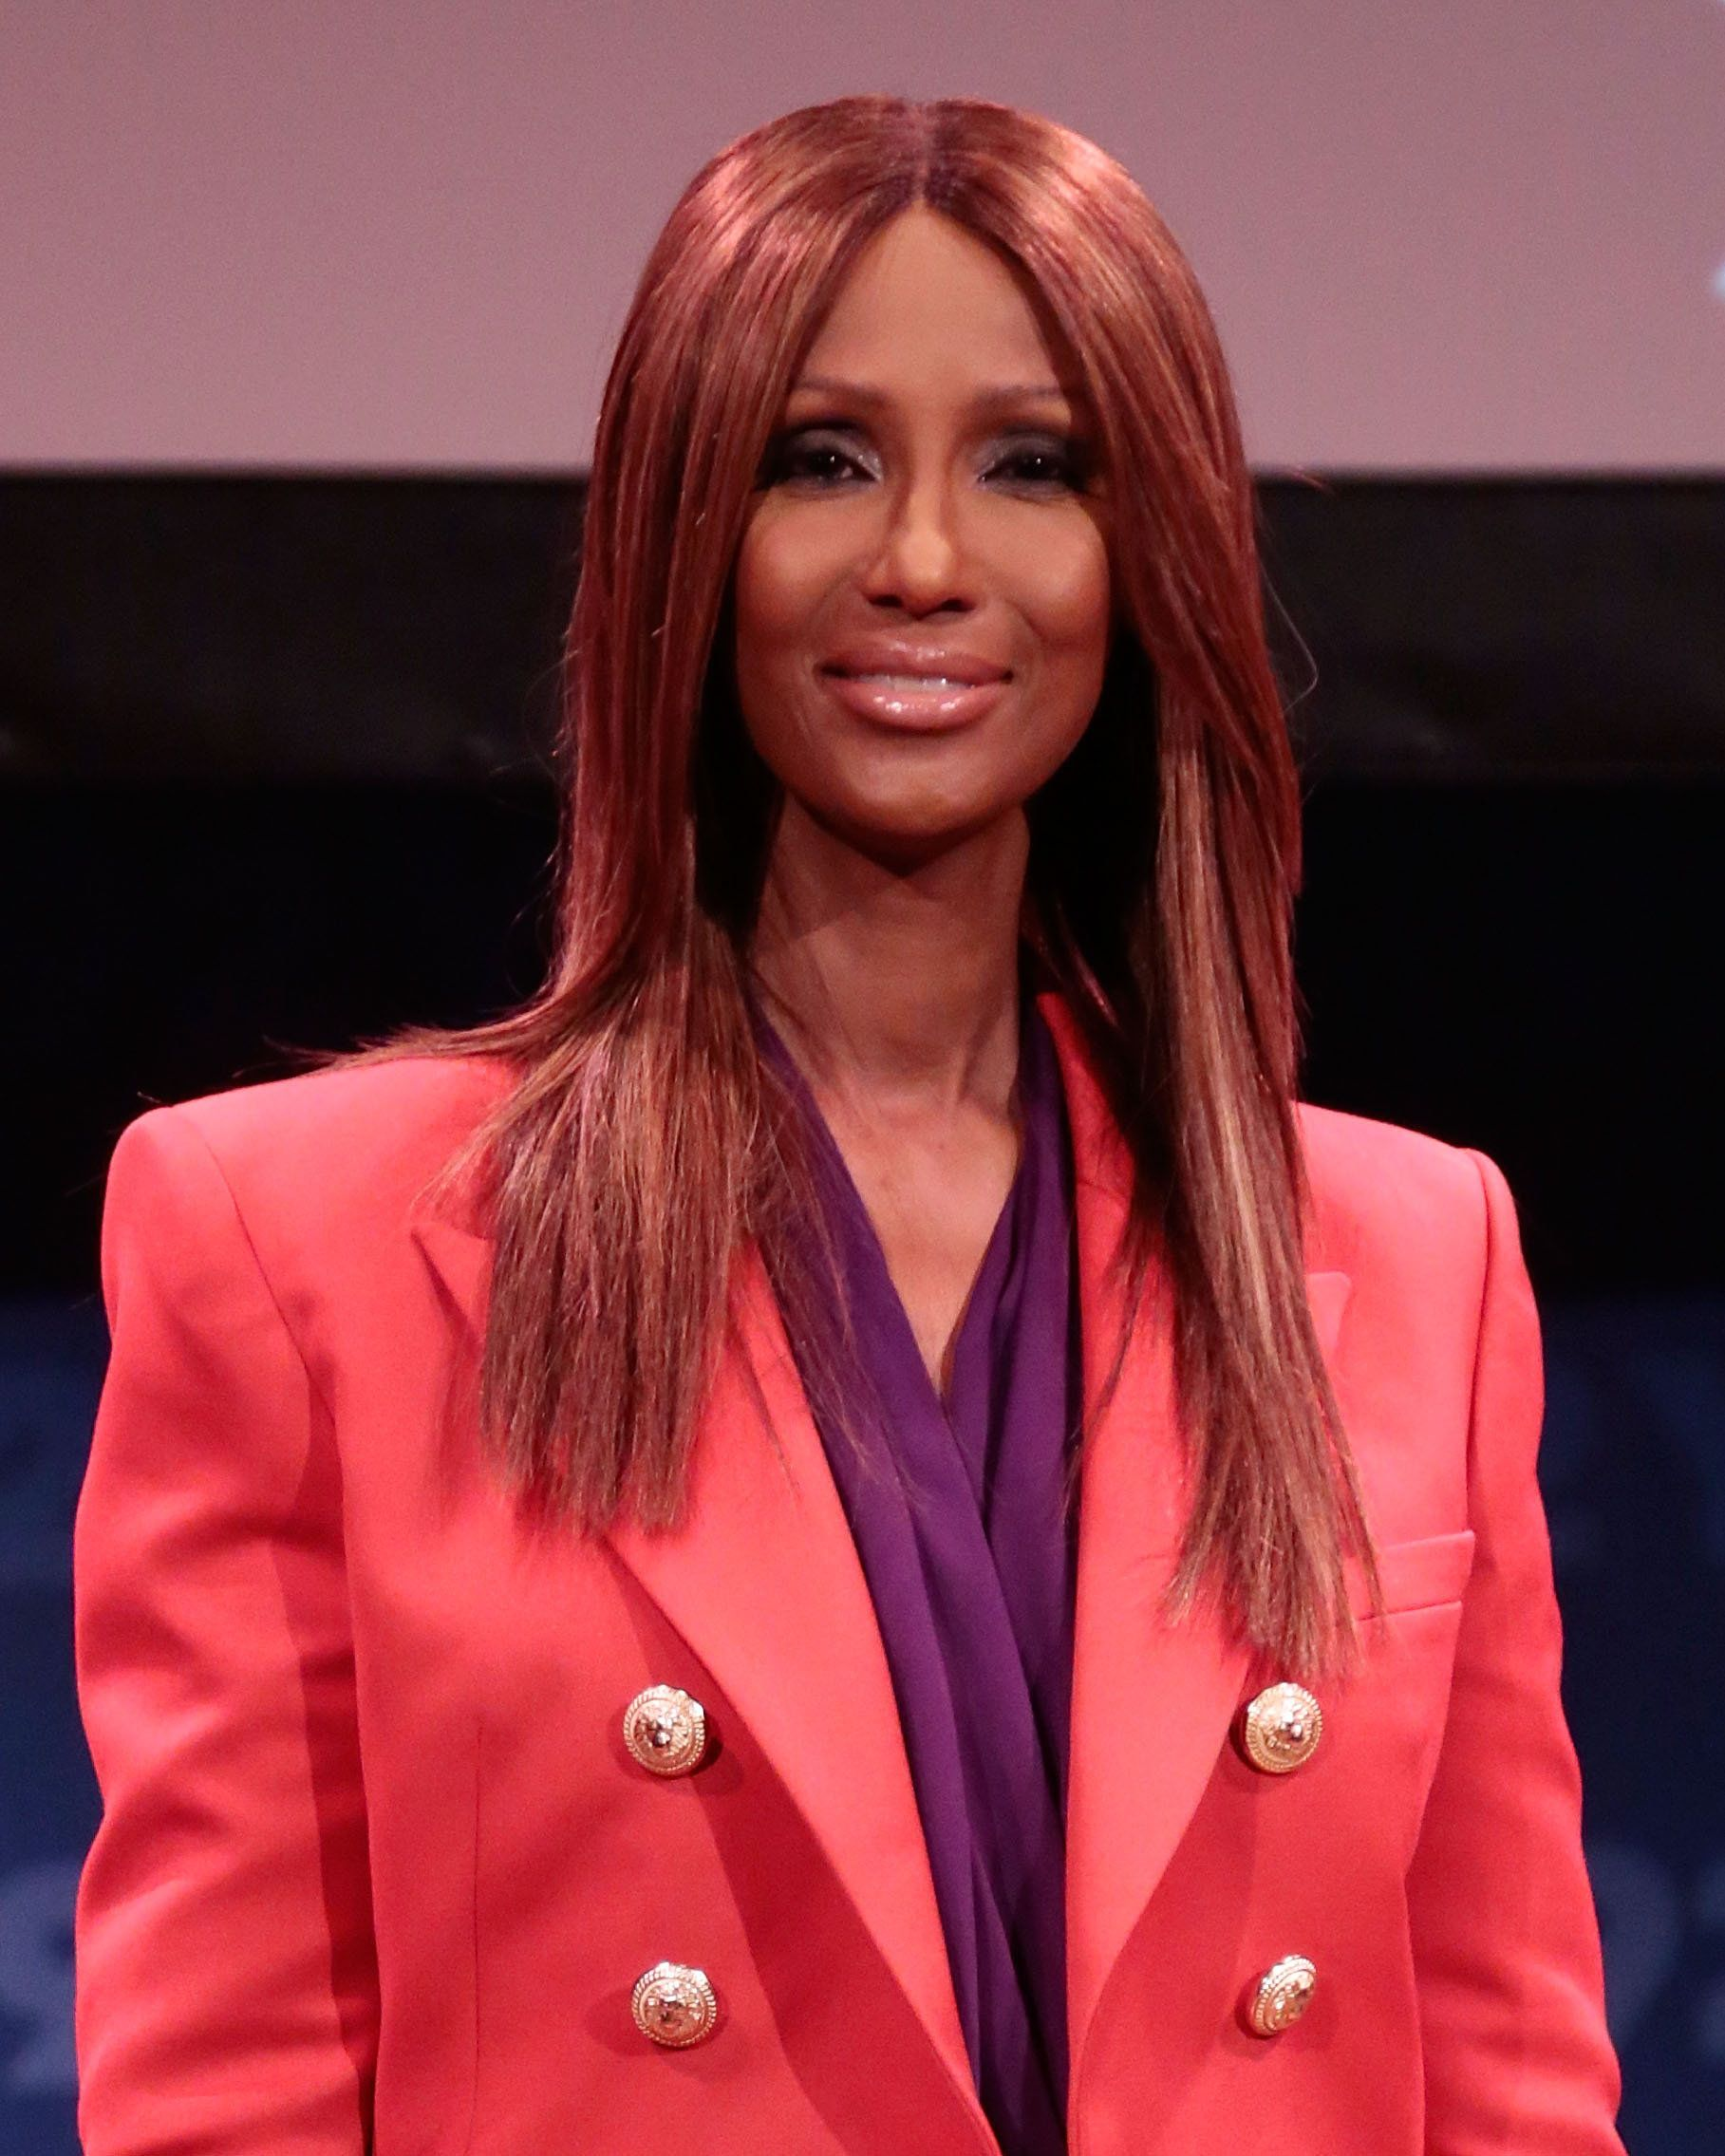 NEW YORK, NY - SEPTEMBER 08:  Iman attends 'Fashion Icons with Fern Mallis' at 92nd Street Y on September 8, 2015 in New York City.  (Photo by Taylor Hill/Getty Images)